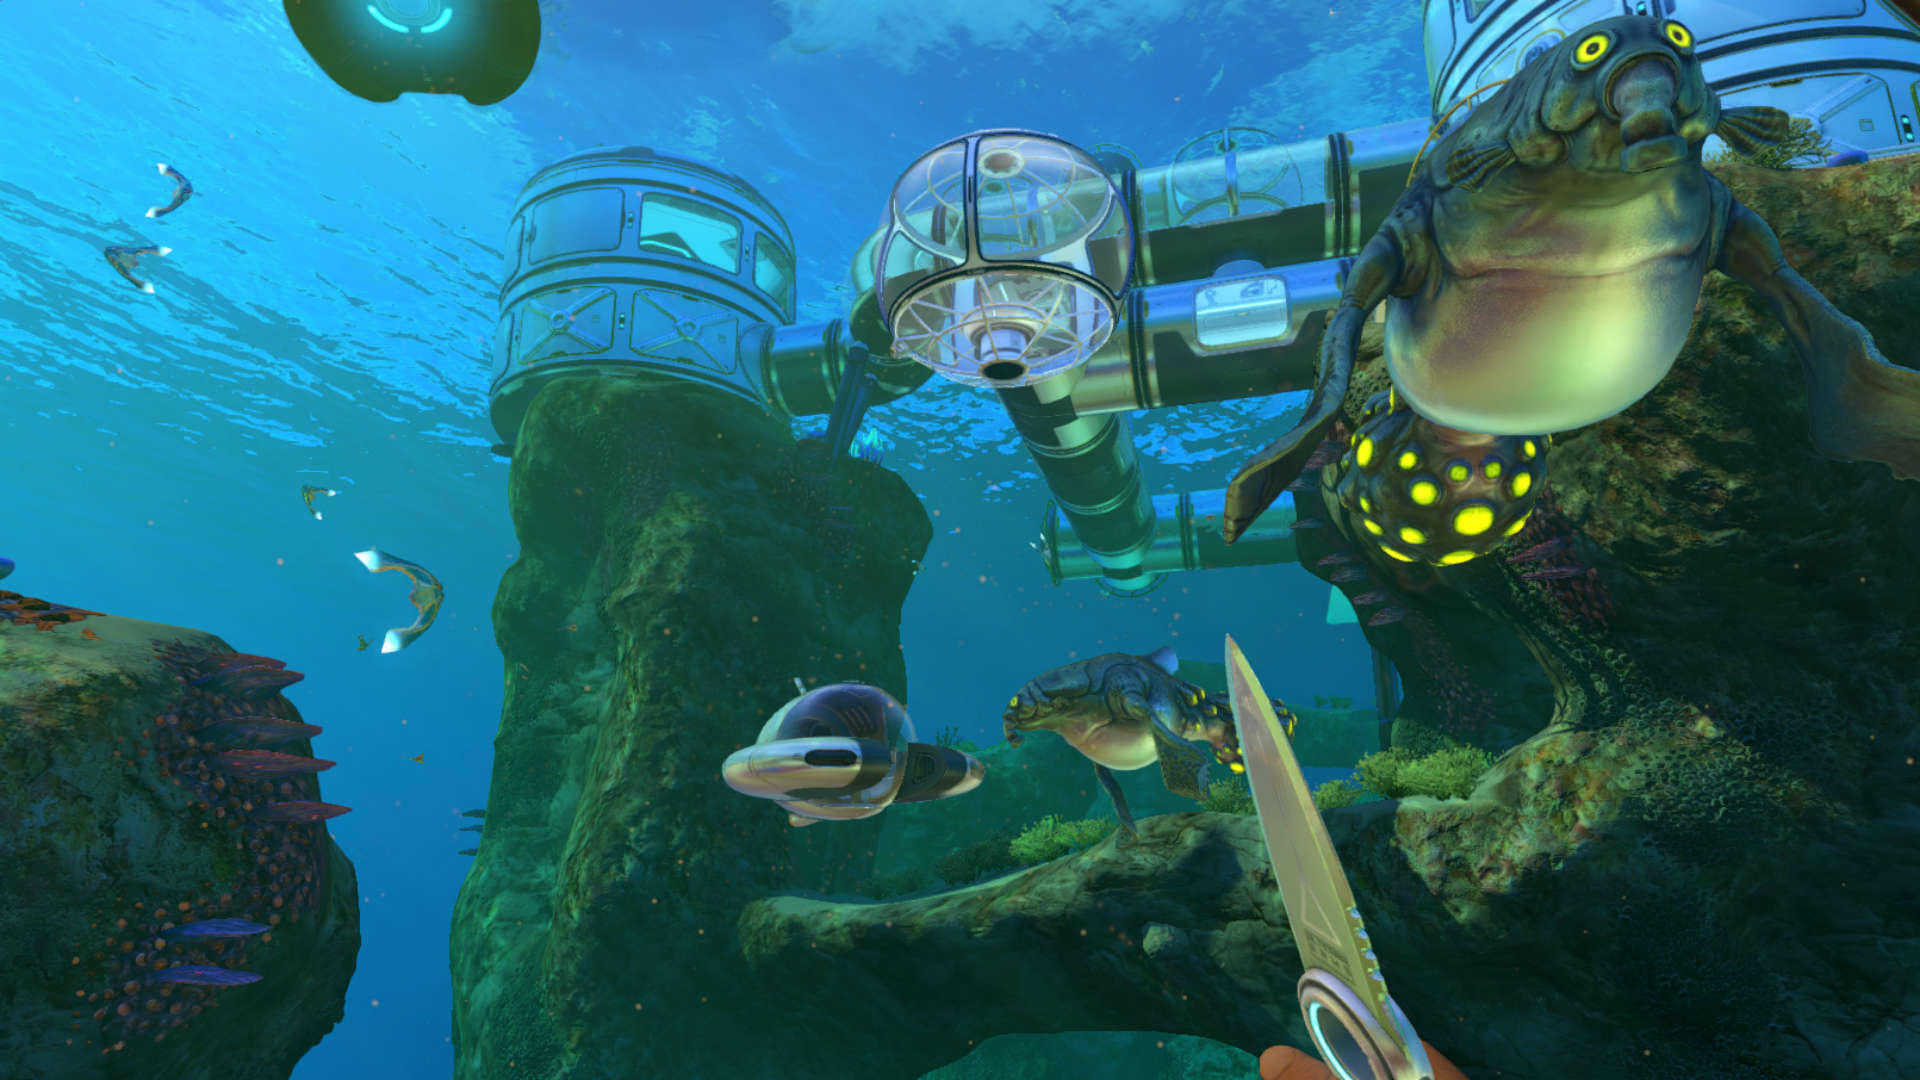 Subnautica Karte.Subnautica Guide Map Mods And Items To Help You Survive This